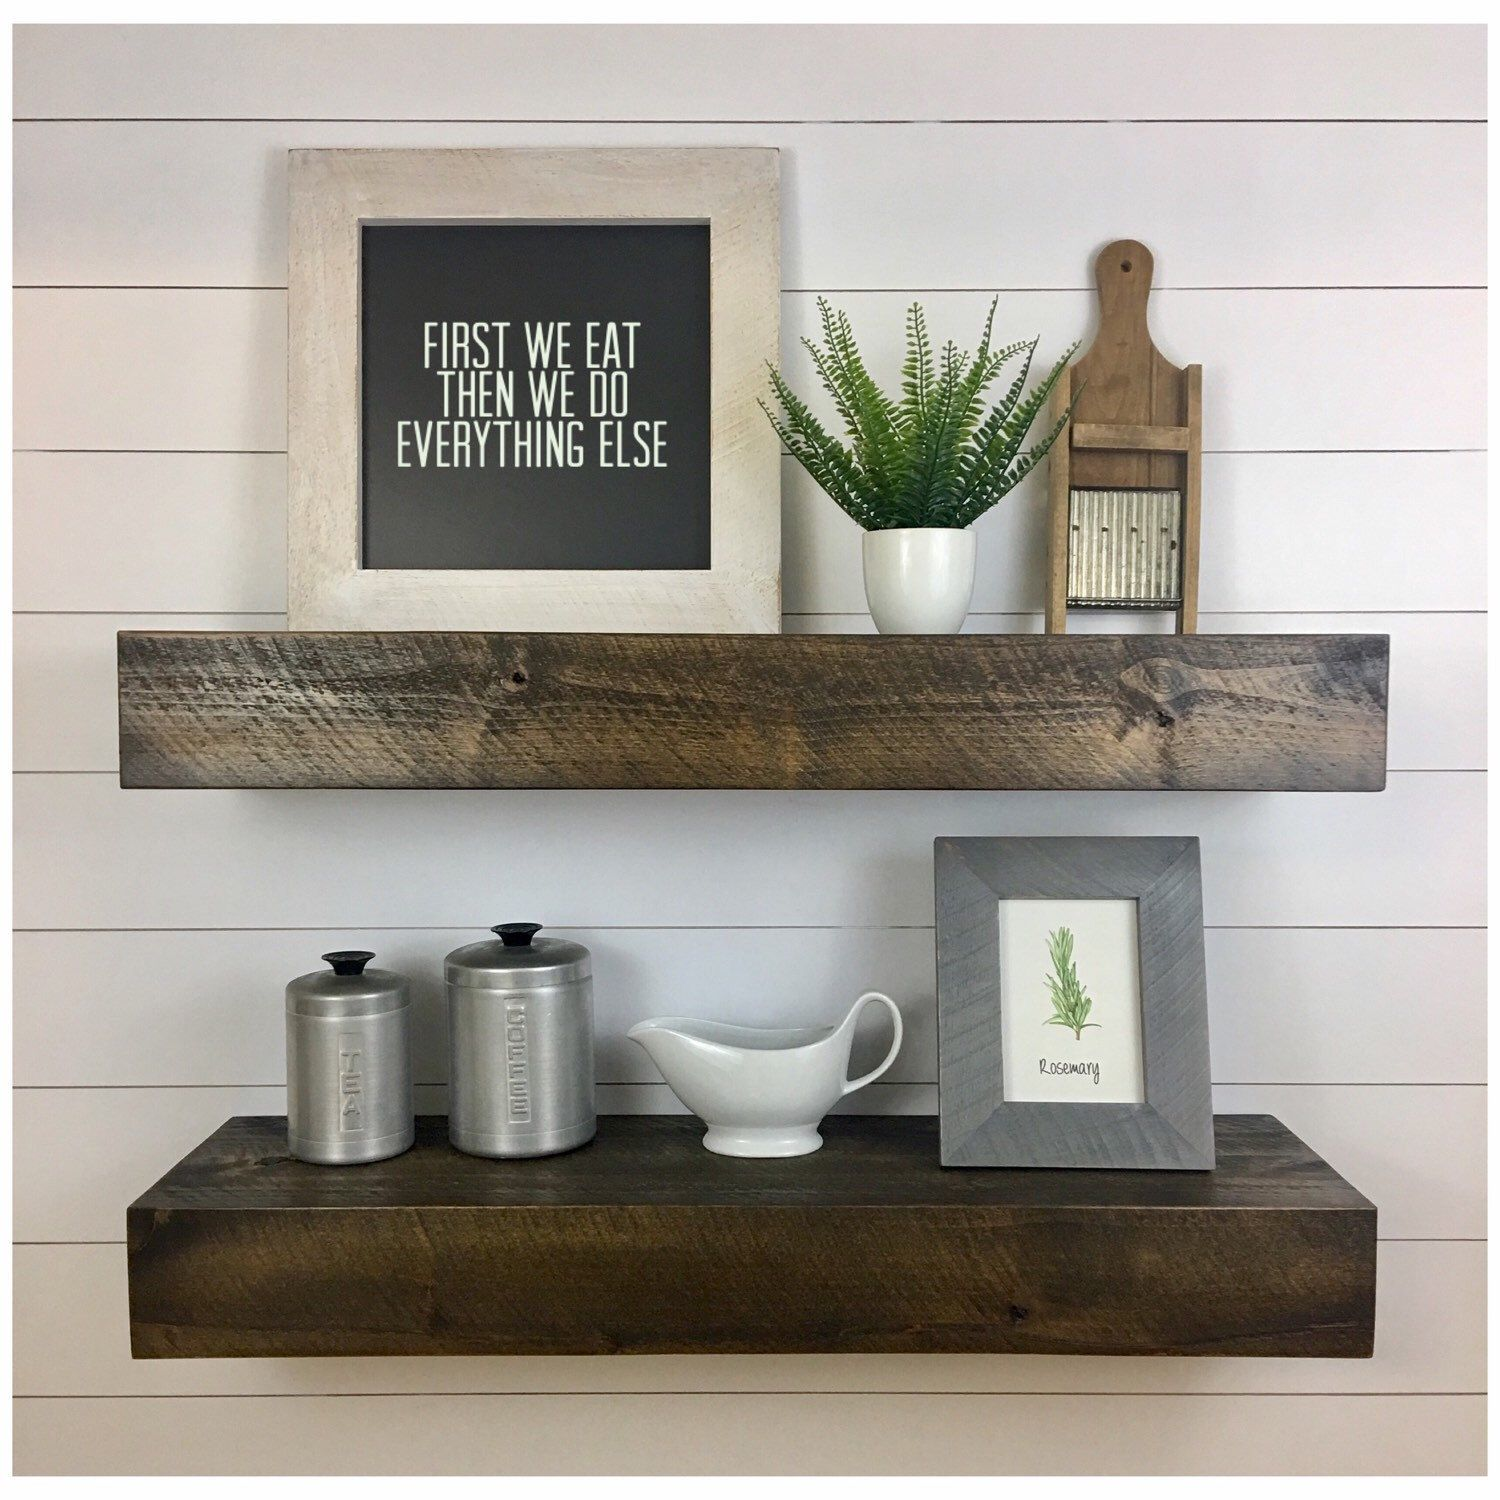 Set Of Two Modern Rustic Floating Deep Shelves Floating Shelves Floating Shelf Deep Floating Shelf Wood Shelf Kitchen Shelf Floating Shelves Rustic Wood Floating Shelves Rustic Floating Shelves